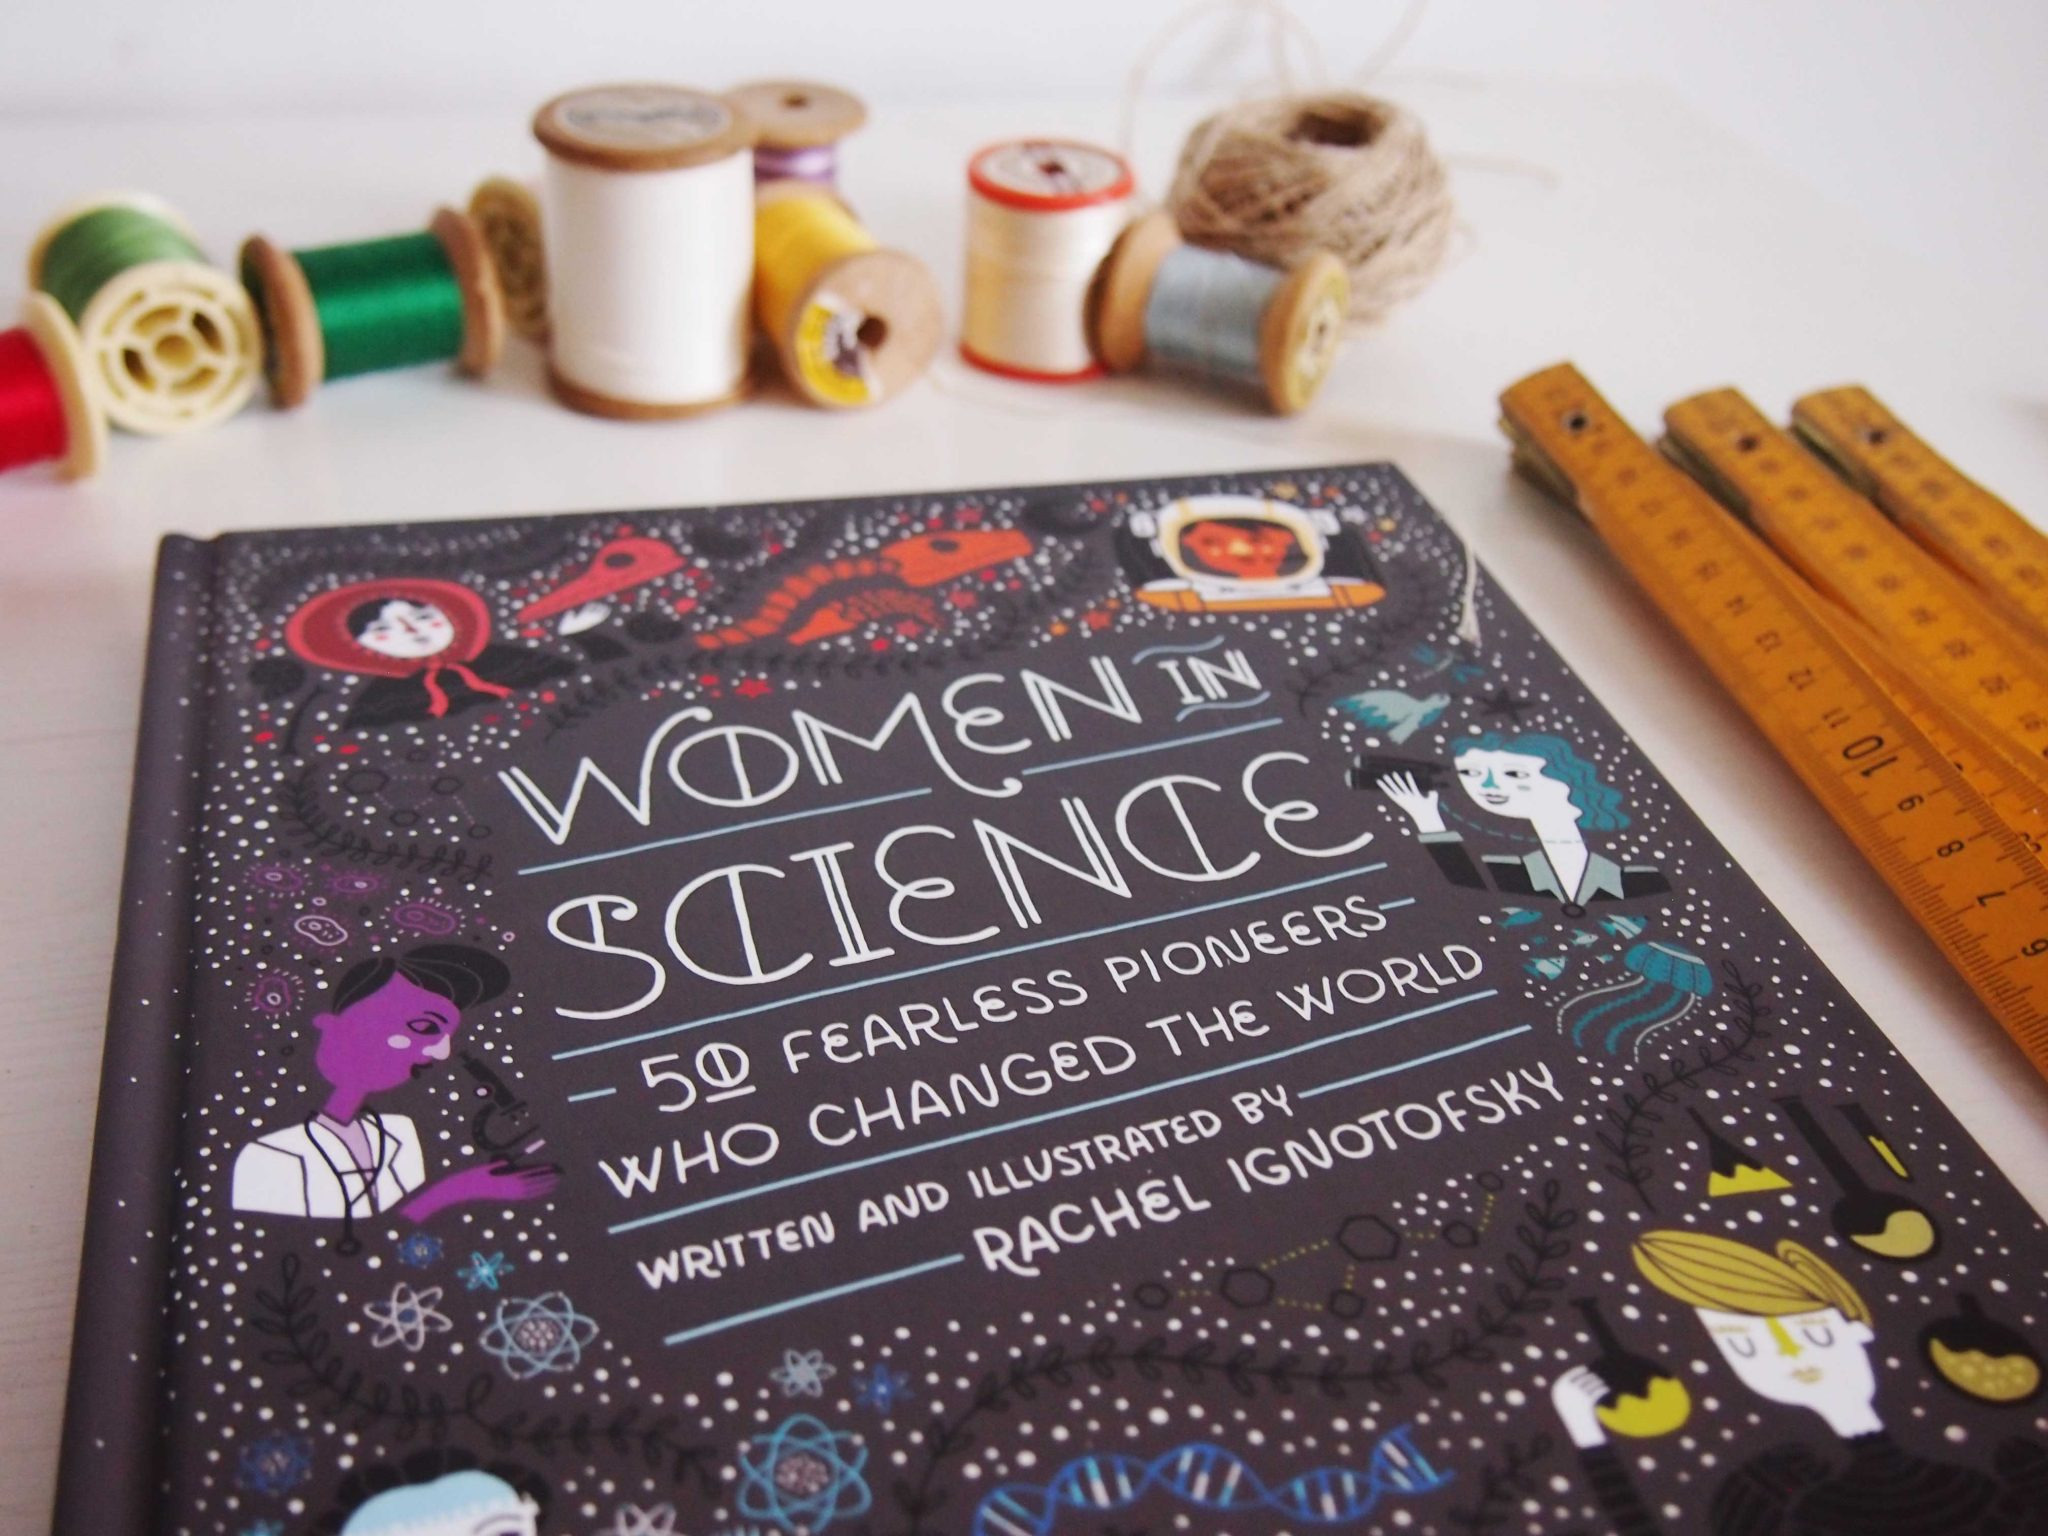 Women in science, rachel ignotofsky